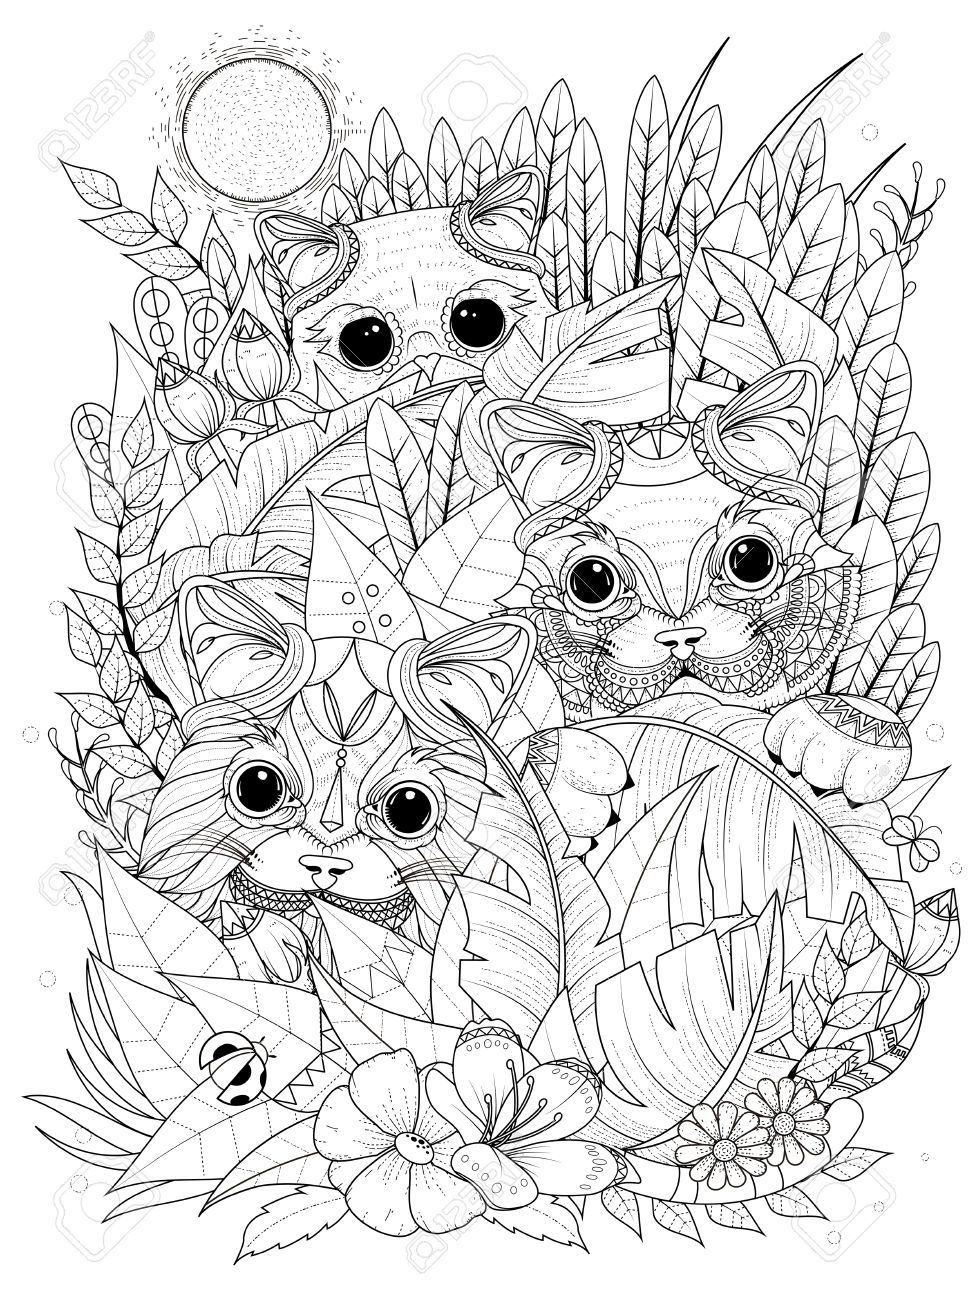 56914127-adult-coloring-page-wild-kitties-hiding-behind-plants-Stock ...